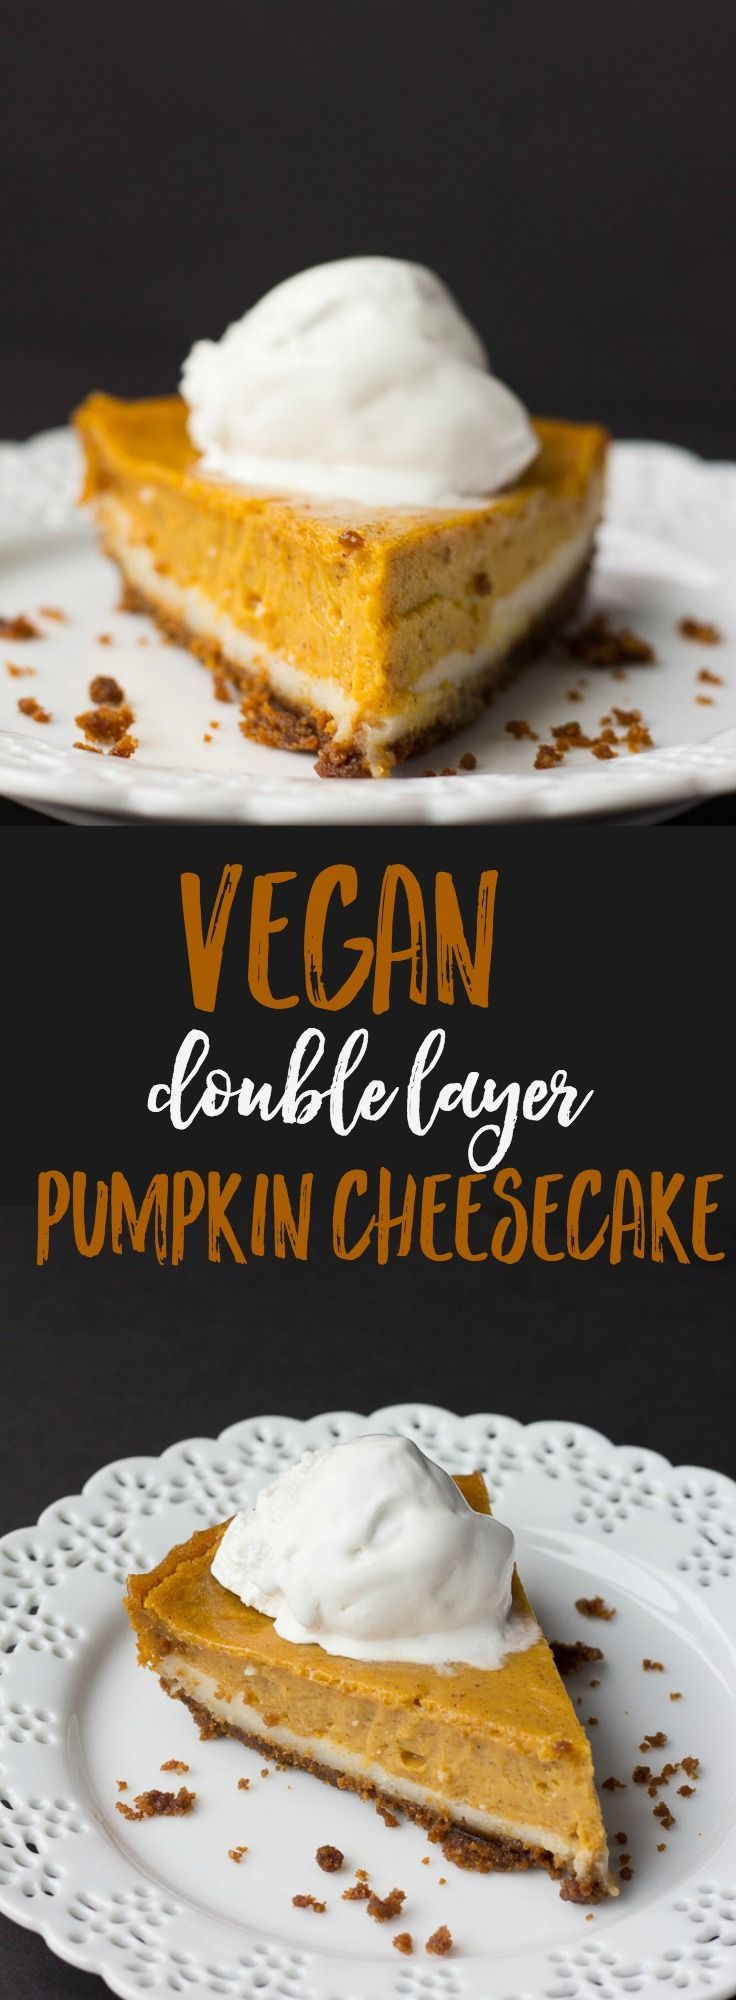 This Vegan Double Layer Pumpkin Cheesecake starts with a gingersnap cookie crust, has two layers of cheesecake perfection and is topped with coconut whip!